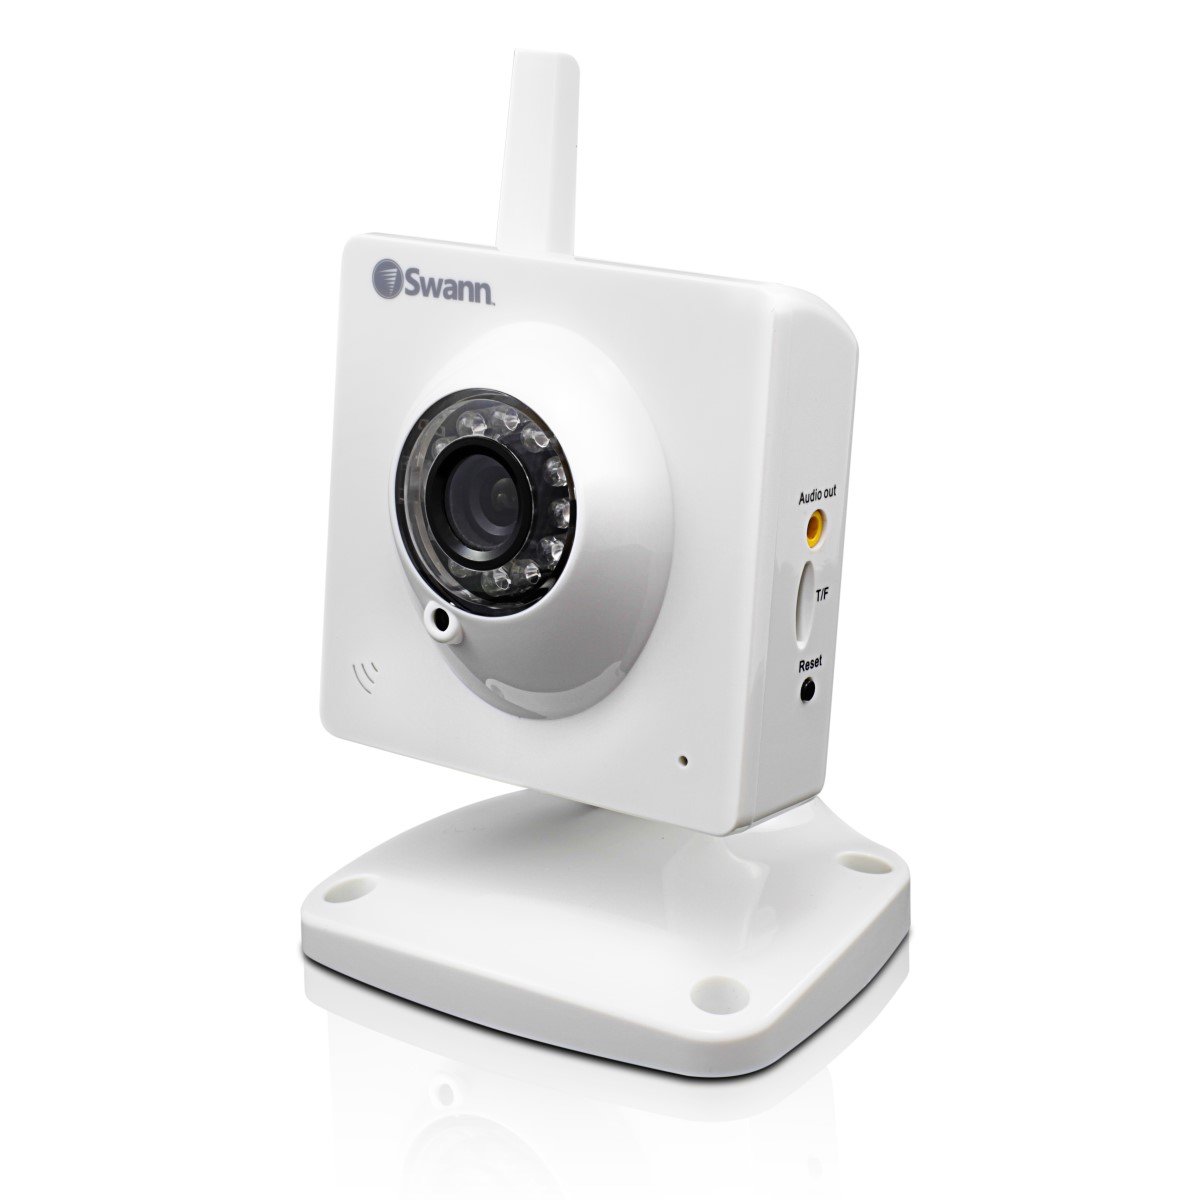 Security Cameras | Buy Online Today at Swann.com/us/